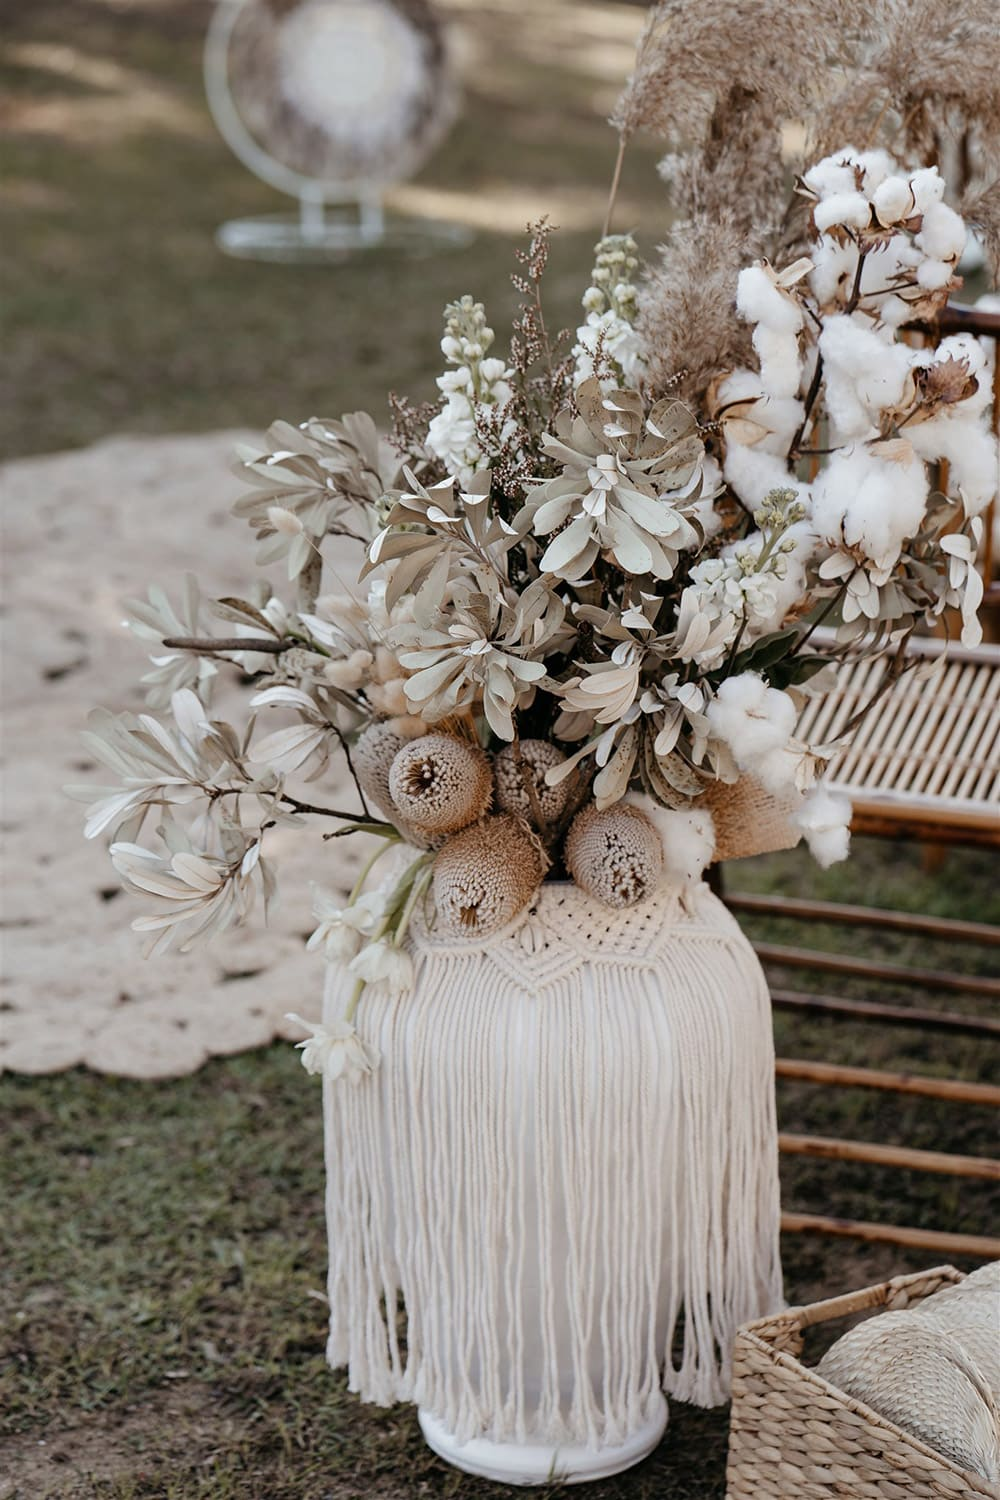 Outdoor Festival Bohemian Wedding Inspiration   This outdoor boho wedding ceremony consists of woven jute rugs for the aisle and two pillars of white circles in varying sizes adorned with macrame, feathers and flowers for the arbour. The setting is framed by bamboo folding chairs for guests and large white vases decorated with fringed macrame wraps that are filled with neutral dried floral arrangements accented with stems of white tulips, stocks, cotton and ruscus.   Photography: Shae Estella Photo